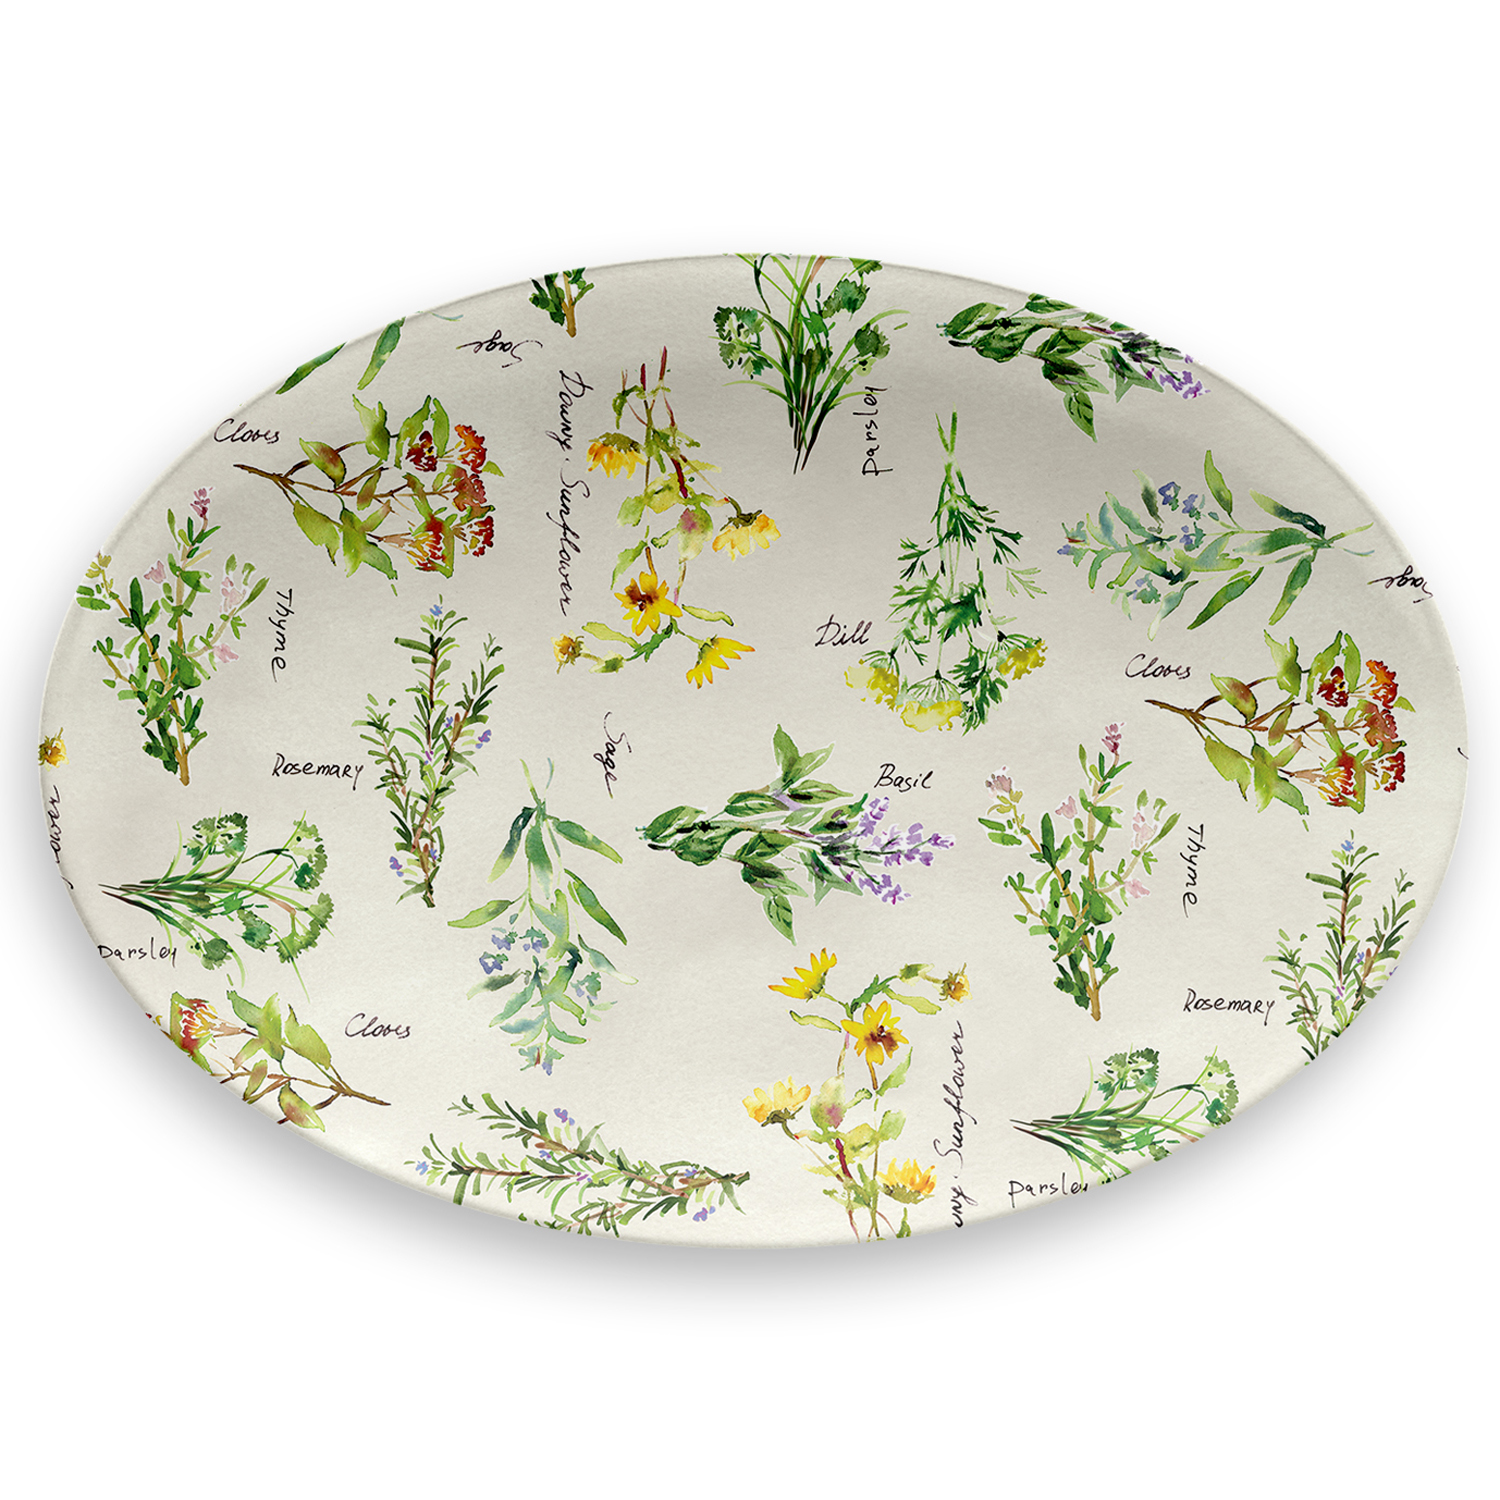 Mainstays Printed Herbs Melamine Oval Serving Platter